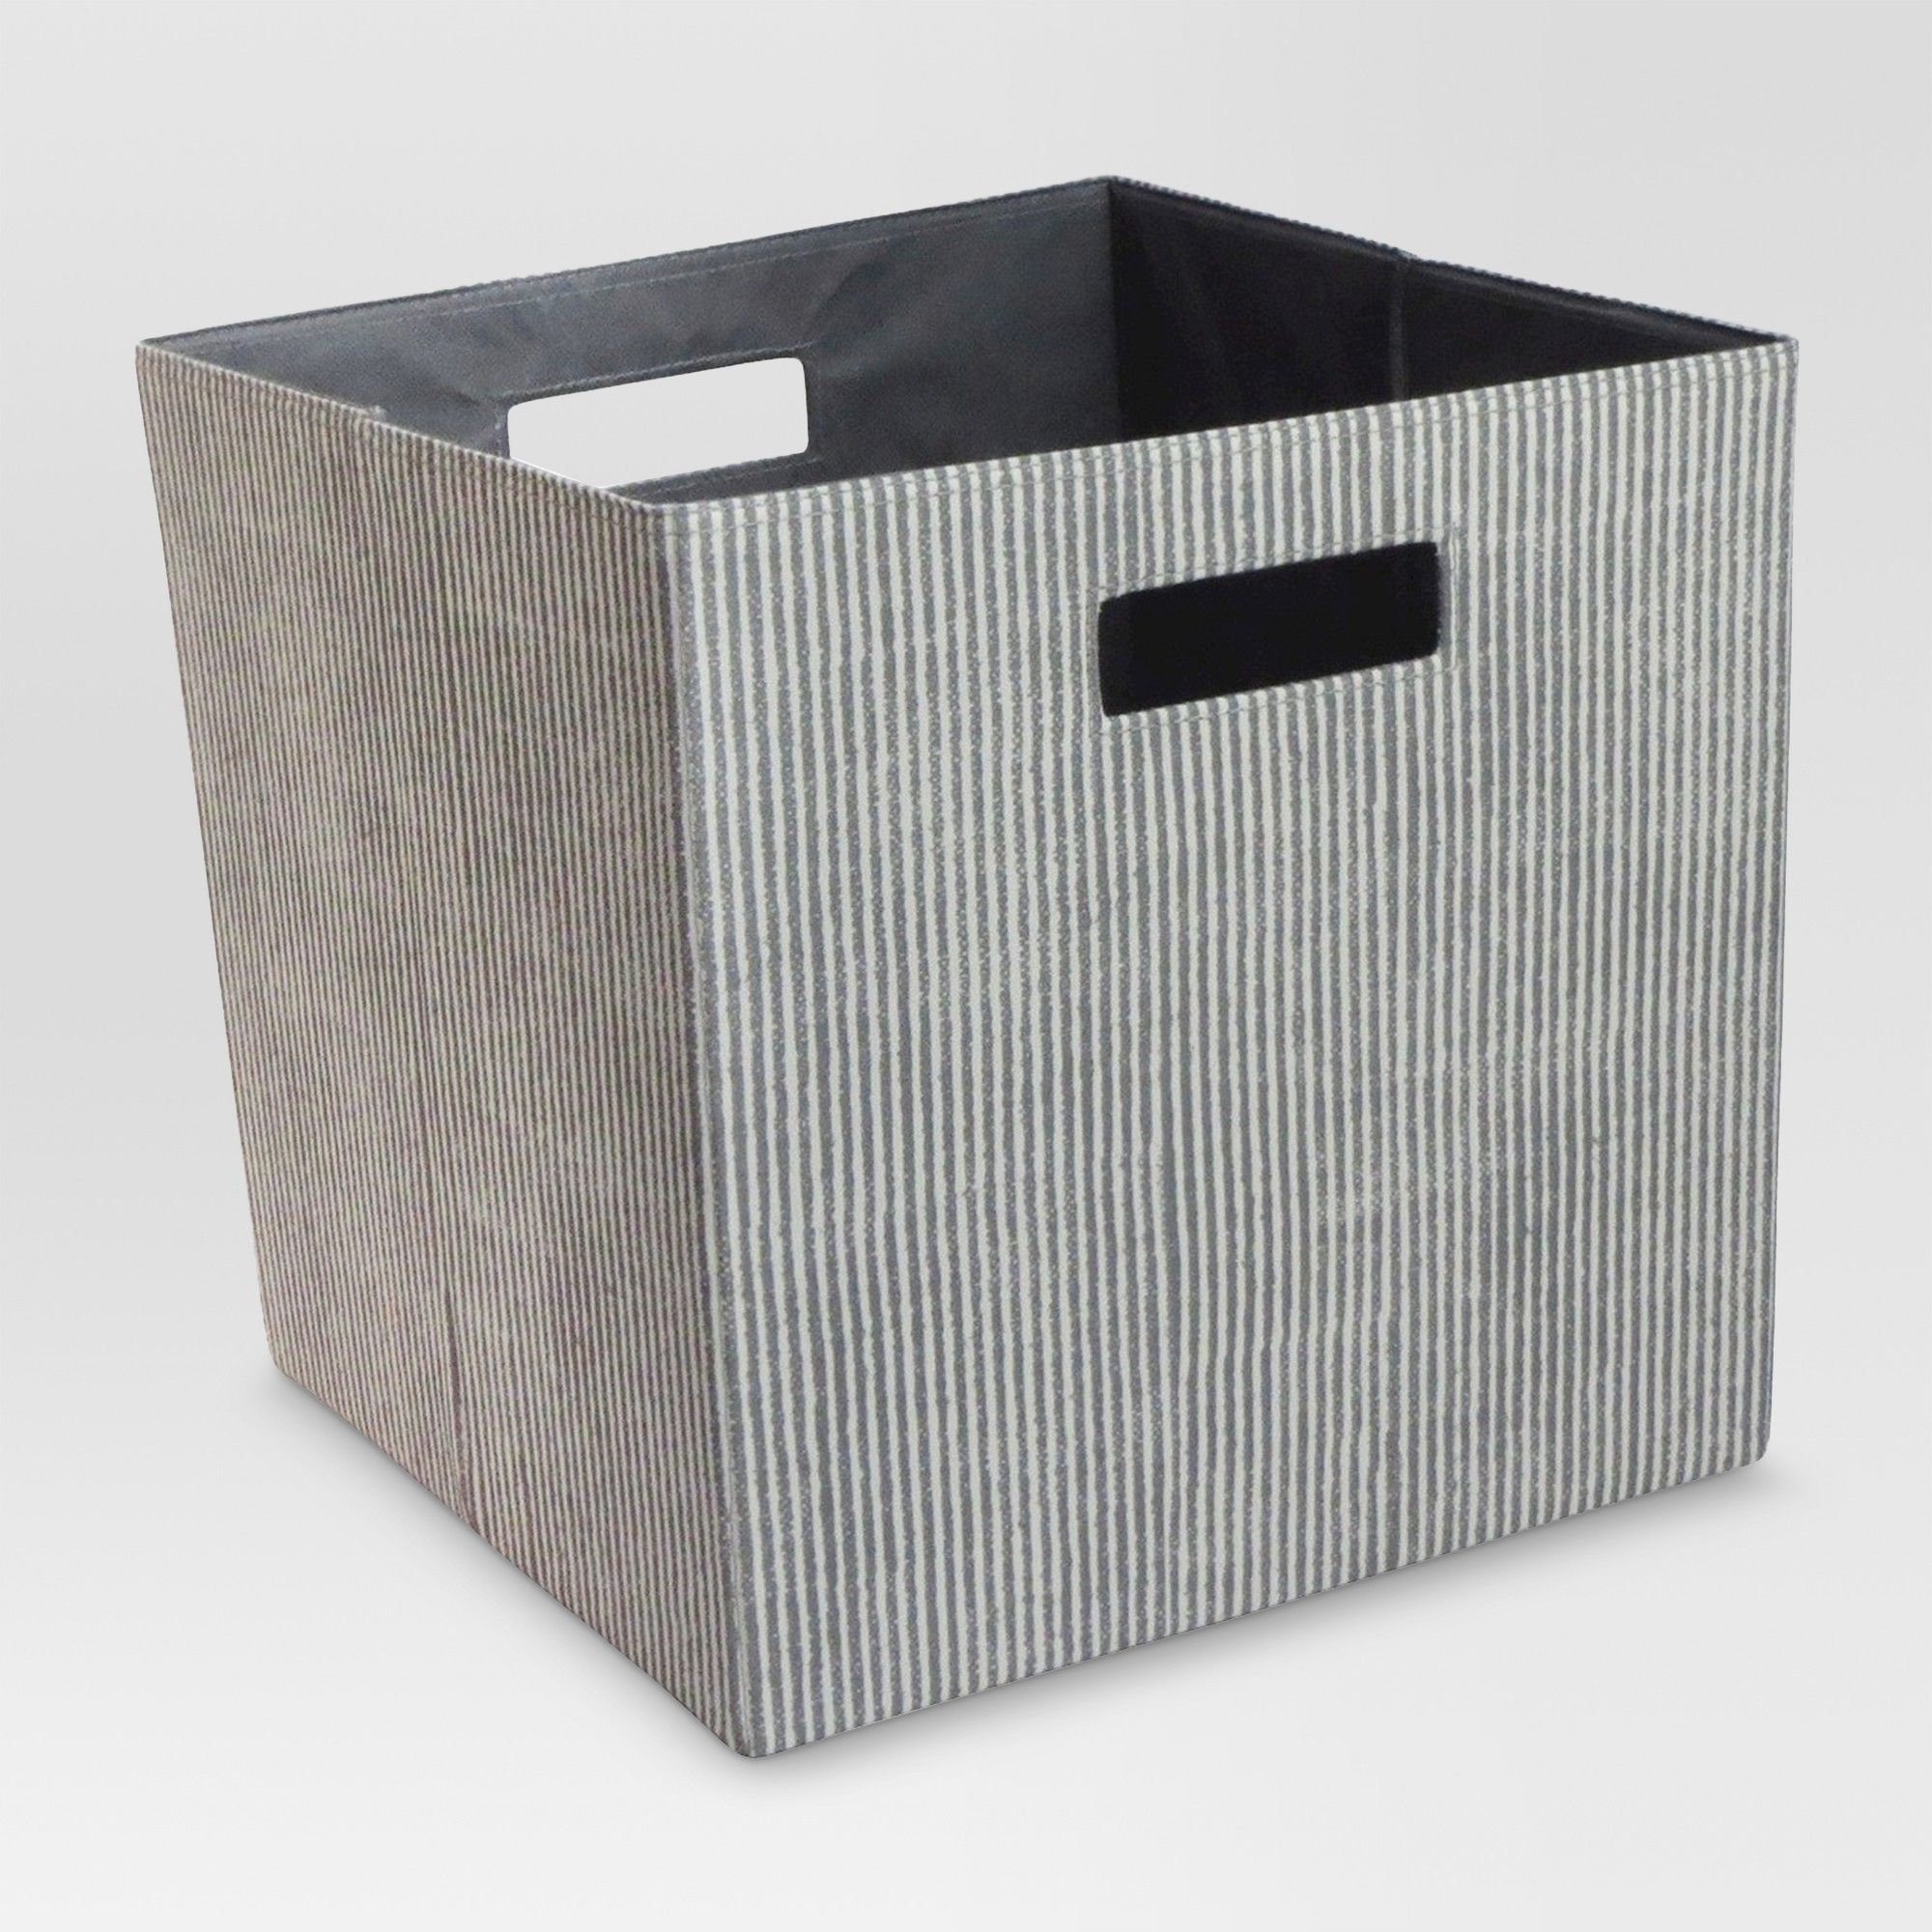 13 Fabric Cube Storage Bin Striped Gray Threshold Cube Storage Bins Cube Storage Storage Bin